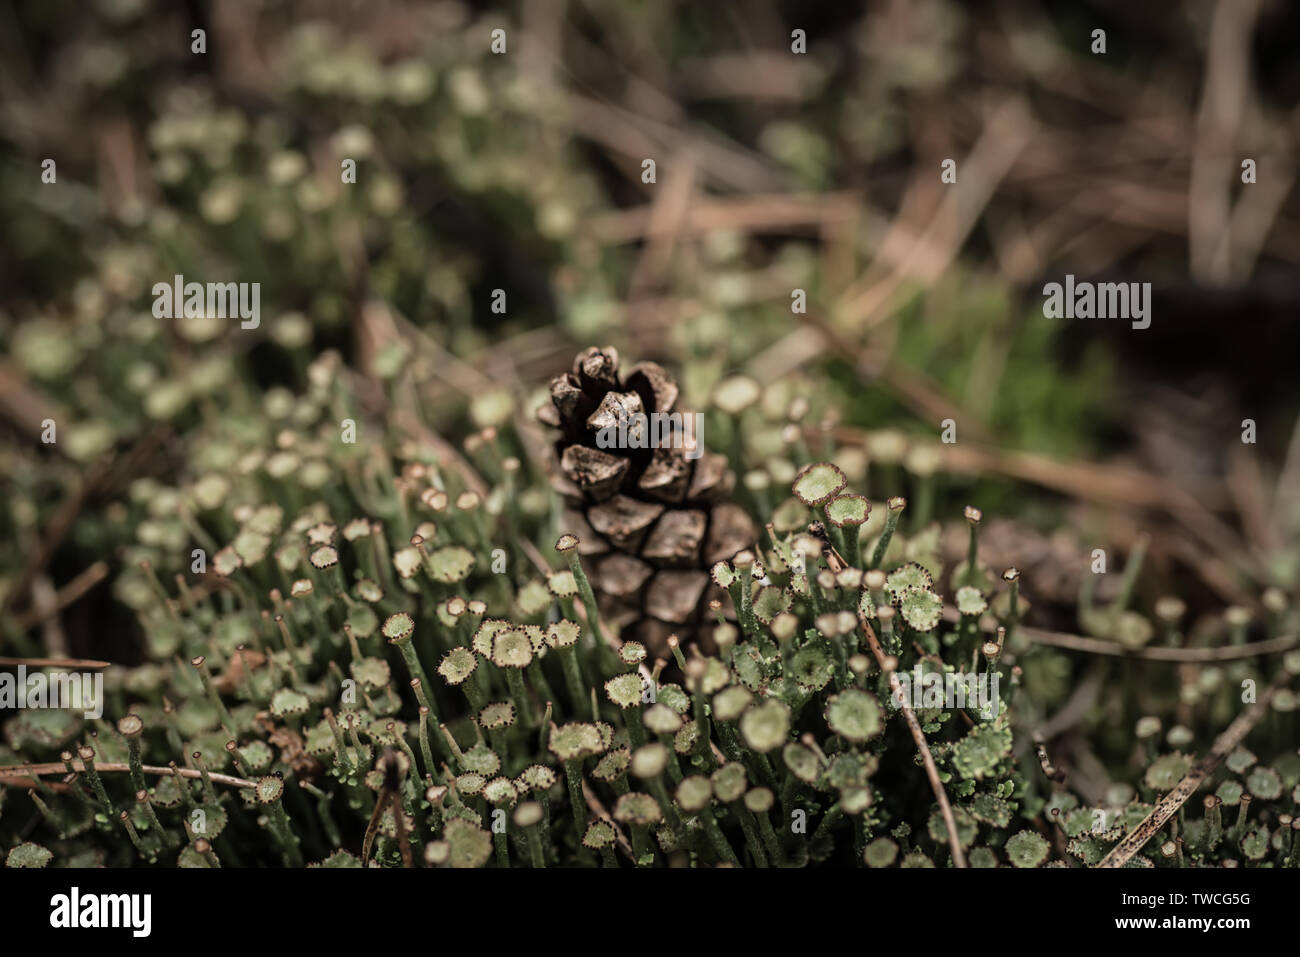 Pine cone in the moss - Stock Image